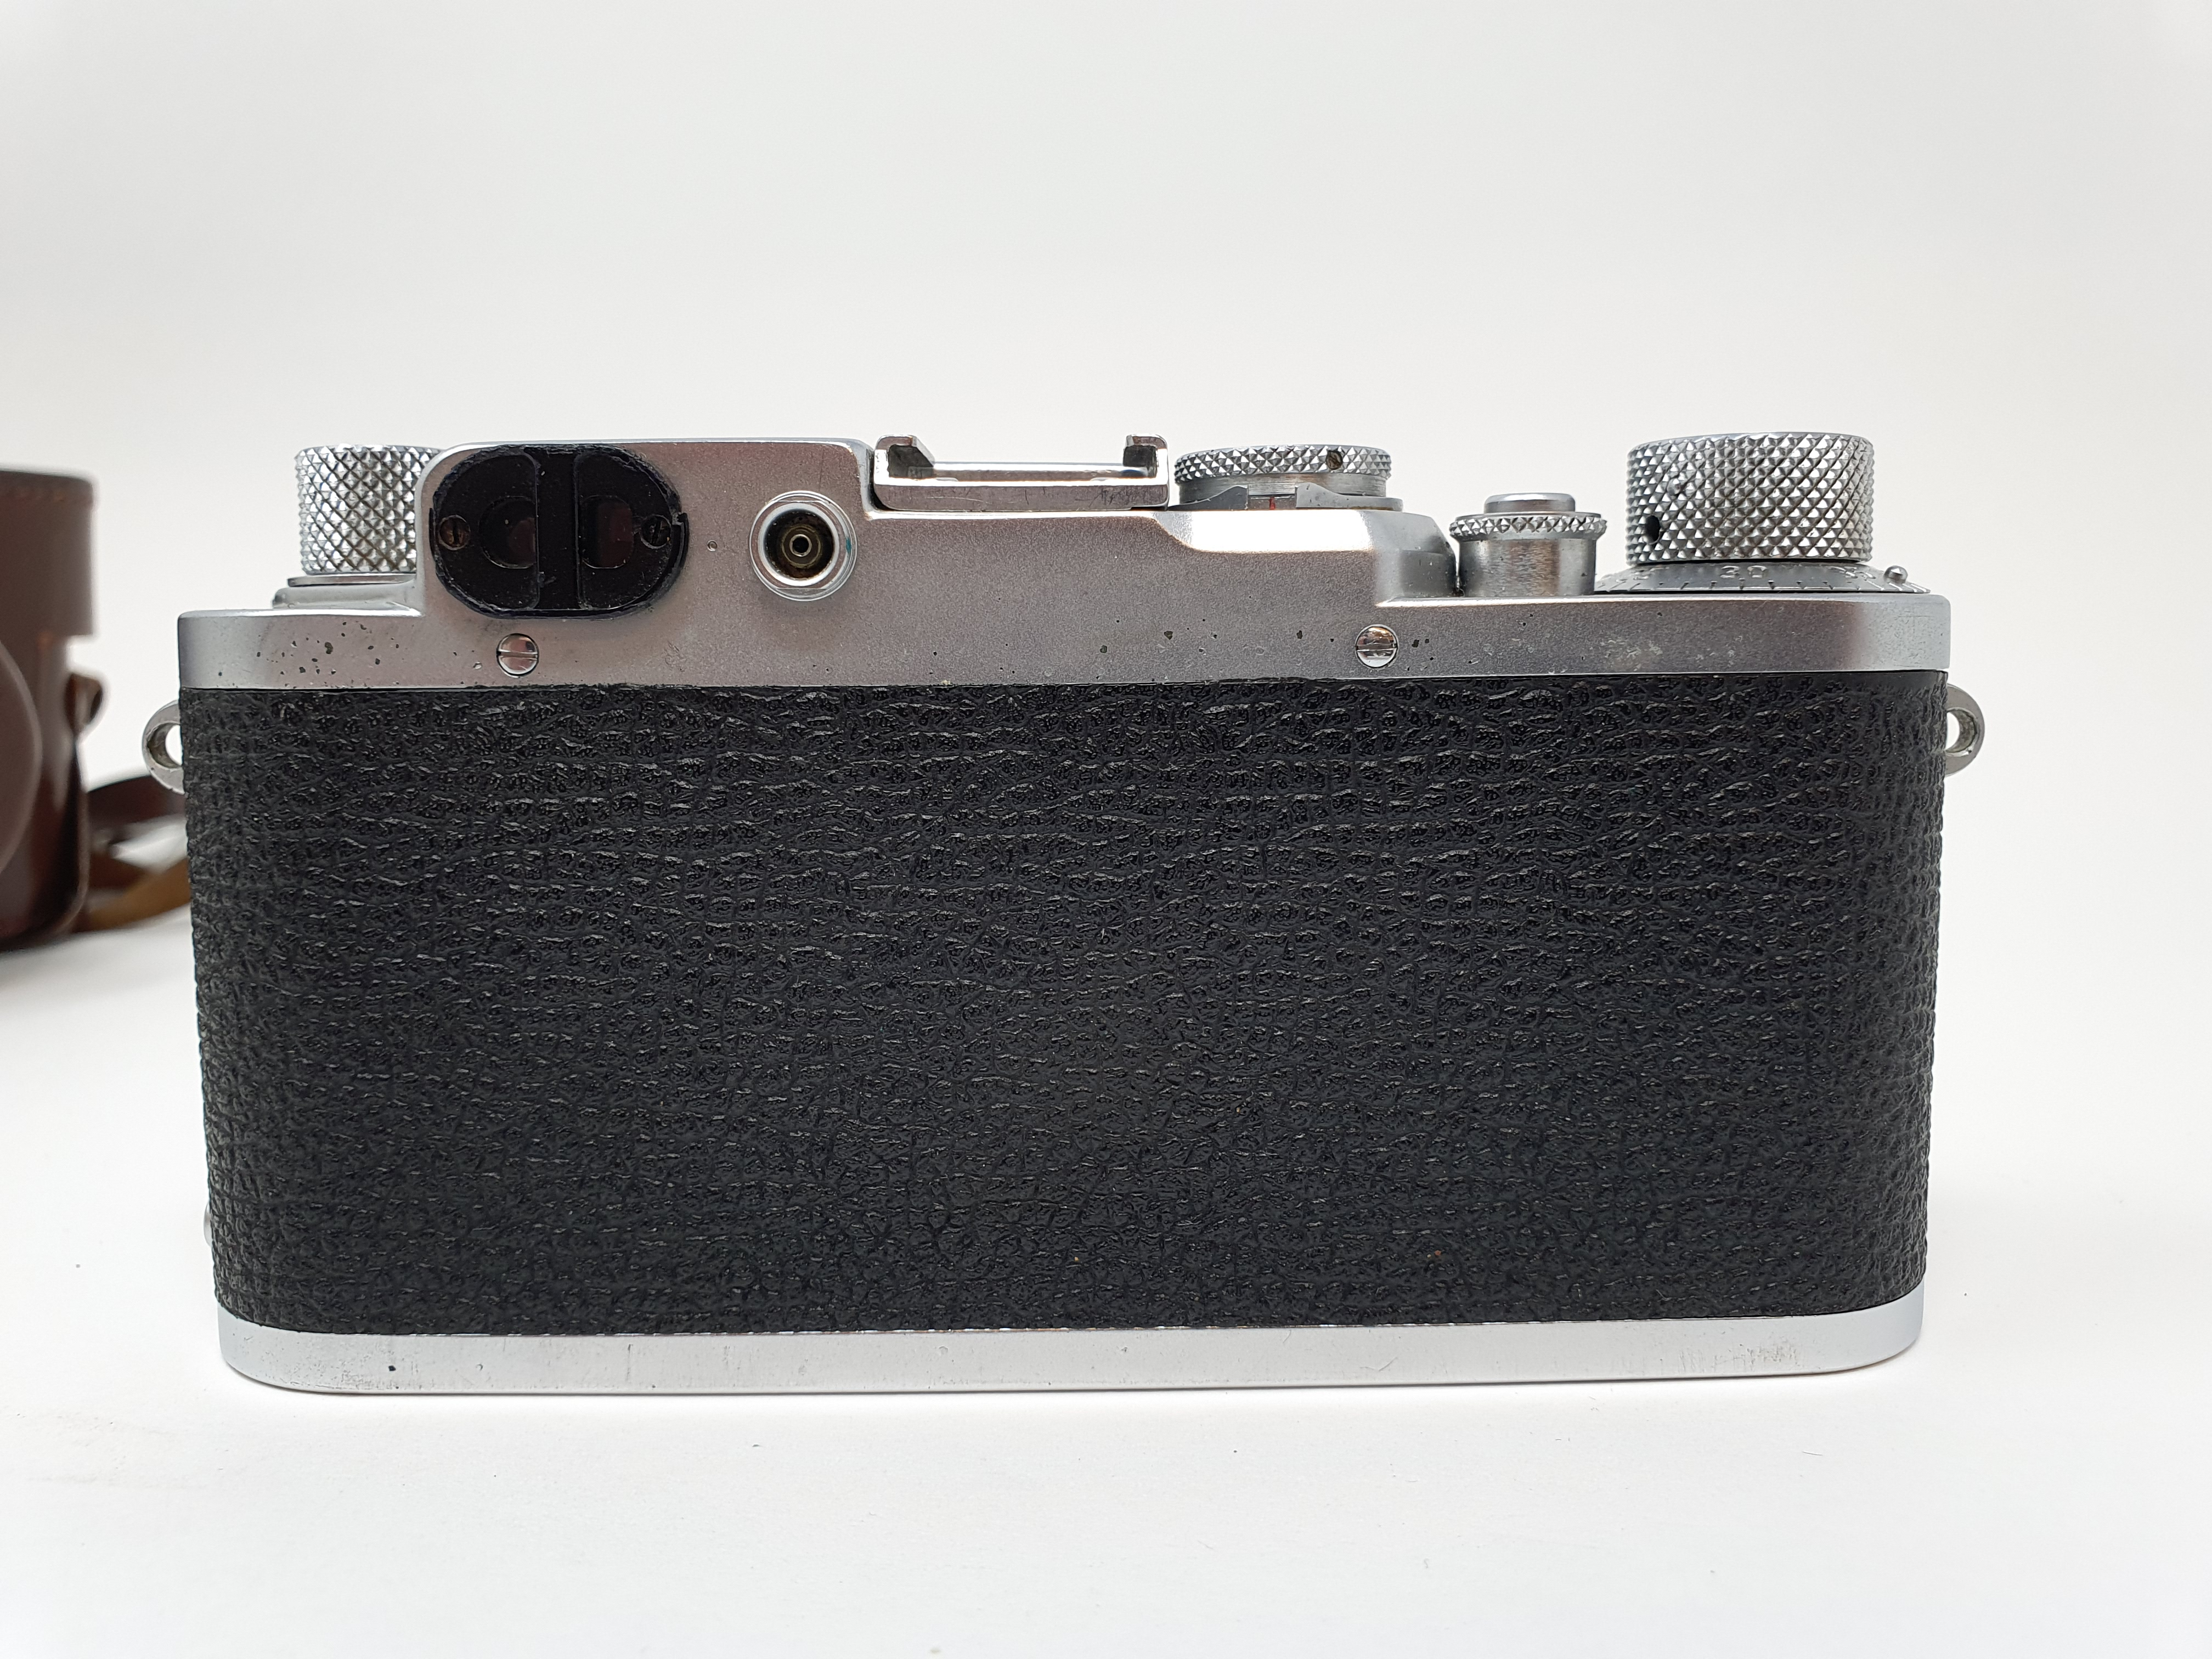 A Leica IIIf camera, serial number 537112, with leather outer case Provenance: Part of a vast single - Image 4 of 5